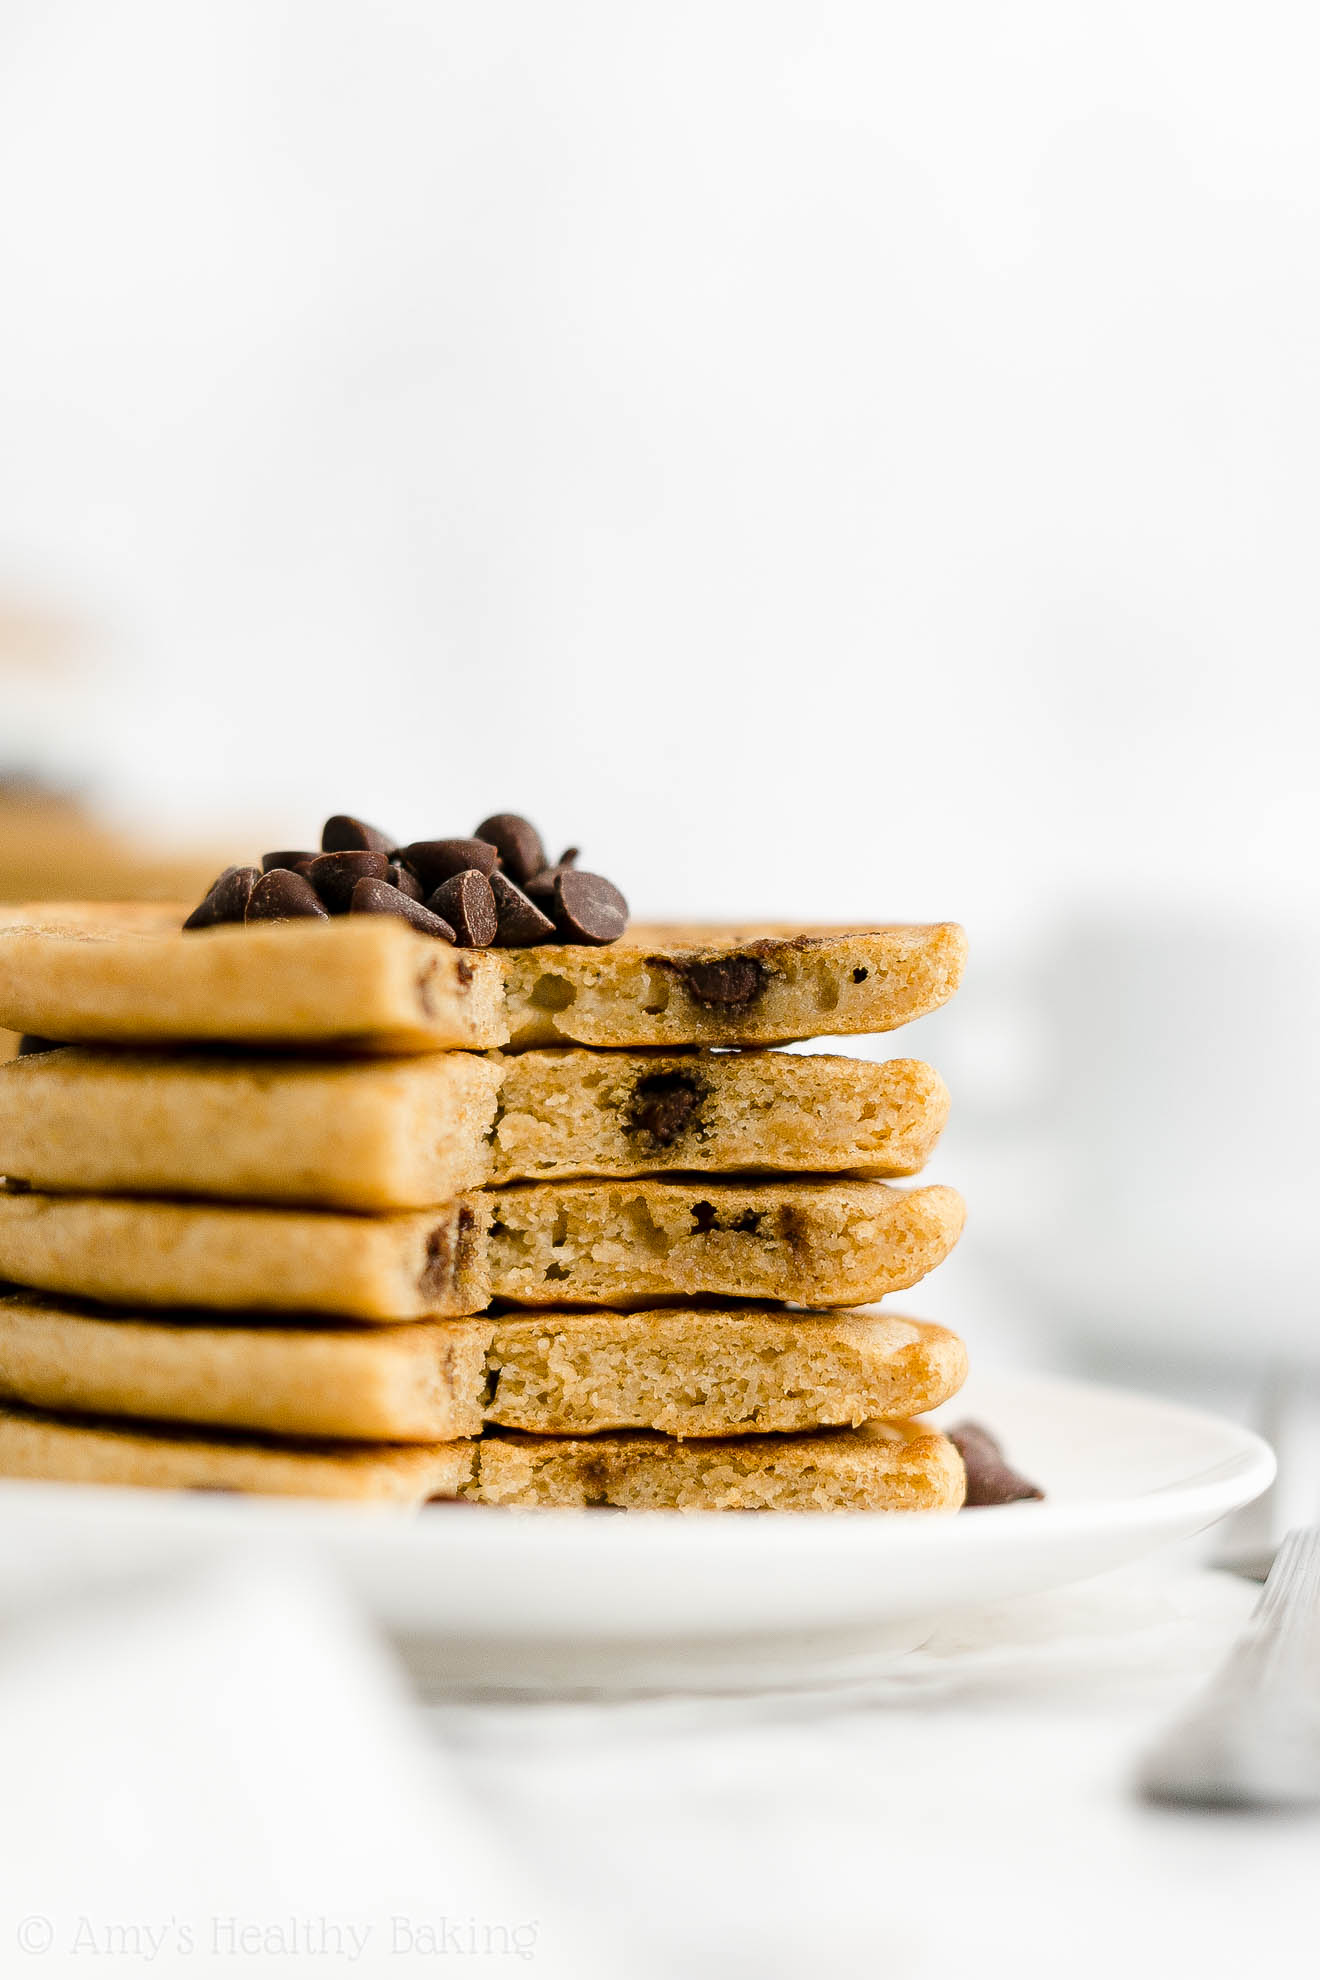 Best Easy Healthy Whole Wheat Greek Yogurt Fluffy Chocolate Chip Pancakes